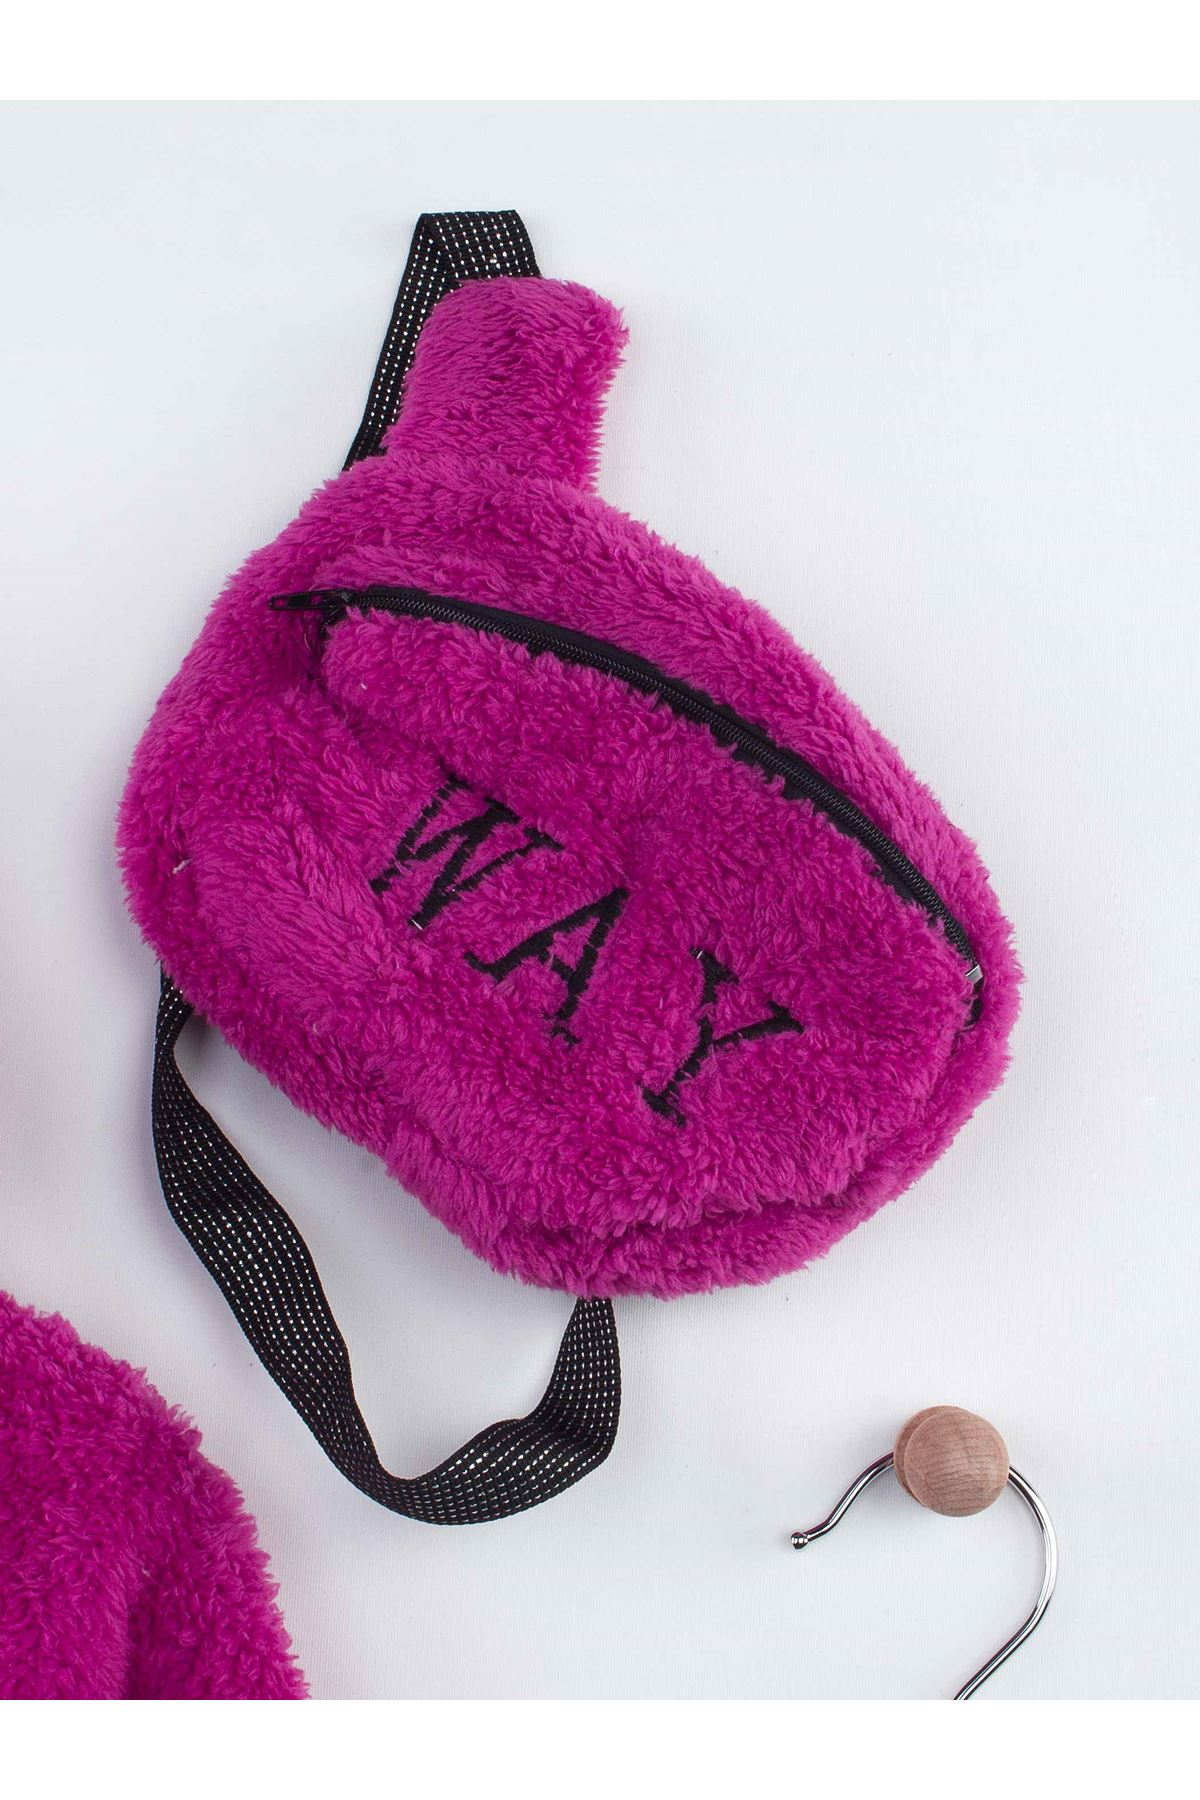 Purple Winter Plush Bag Hooded Female Child The Tights suit